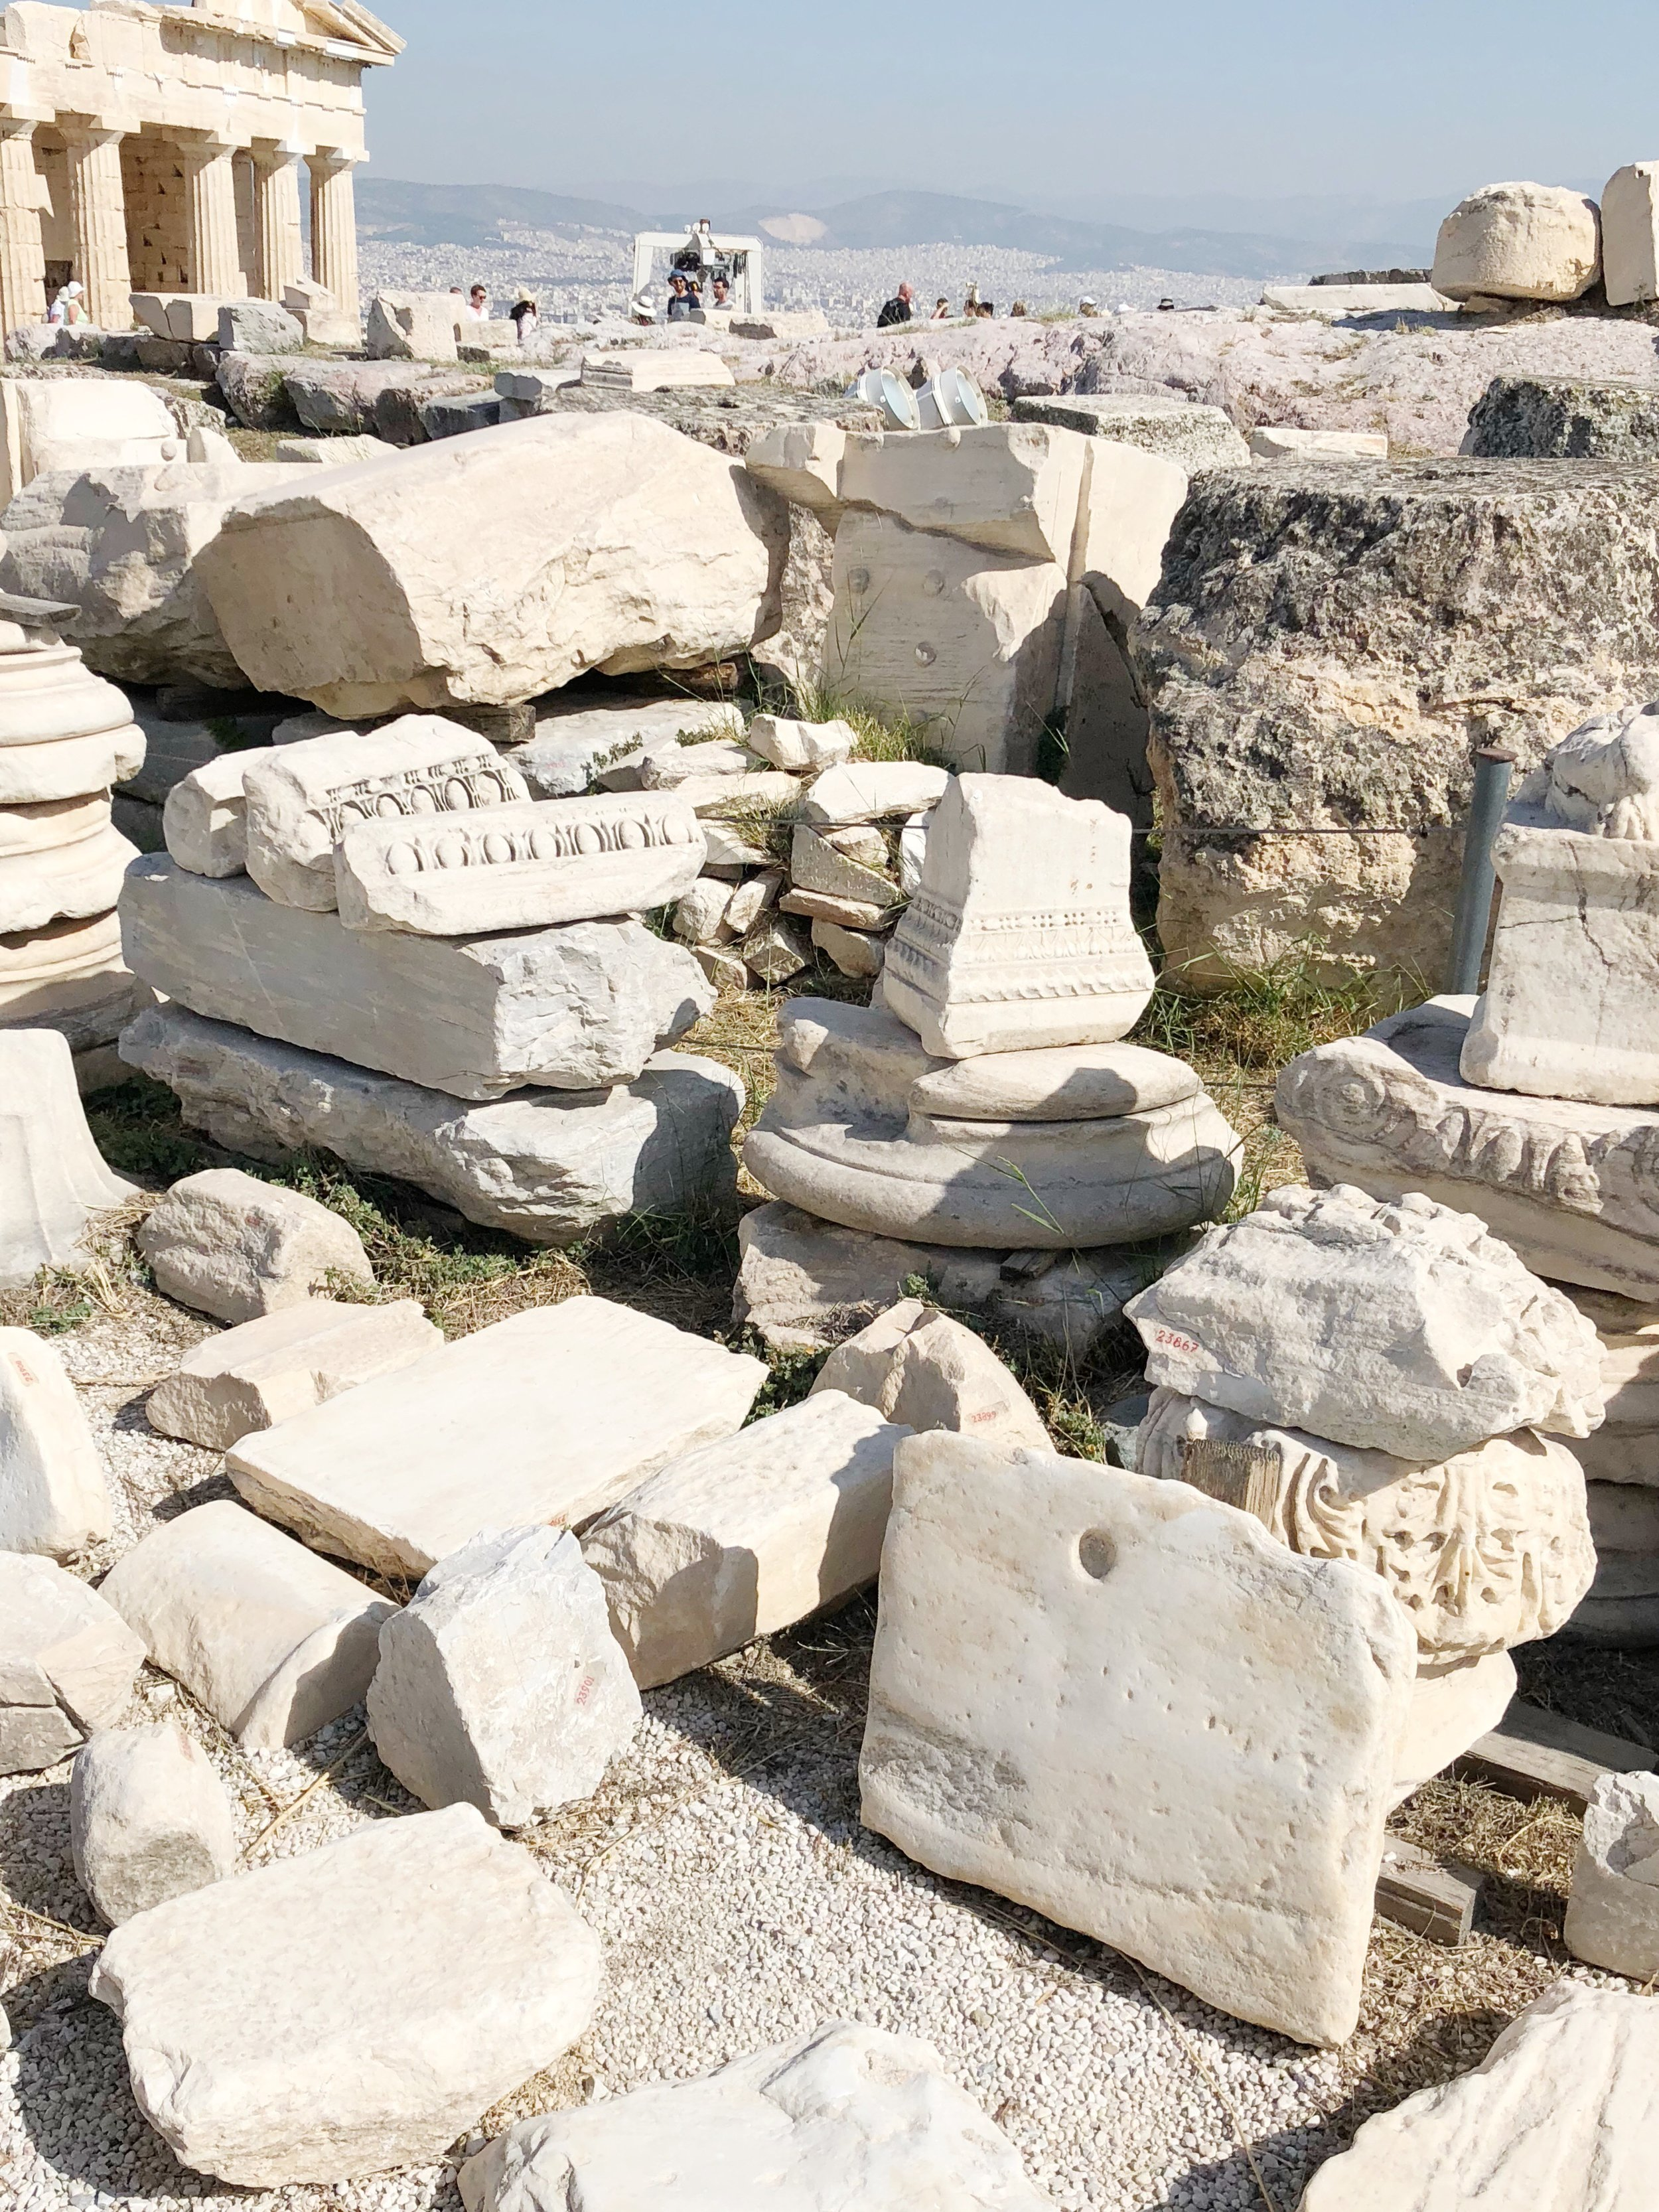 The ruins you'll see scattered across the Acropolis site.